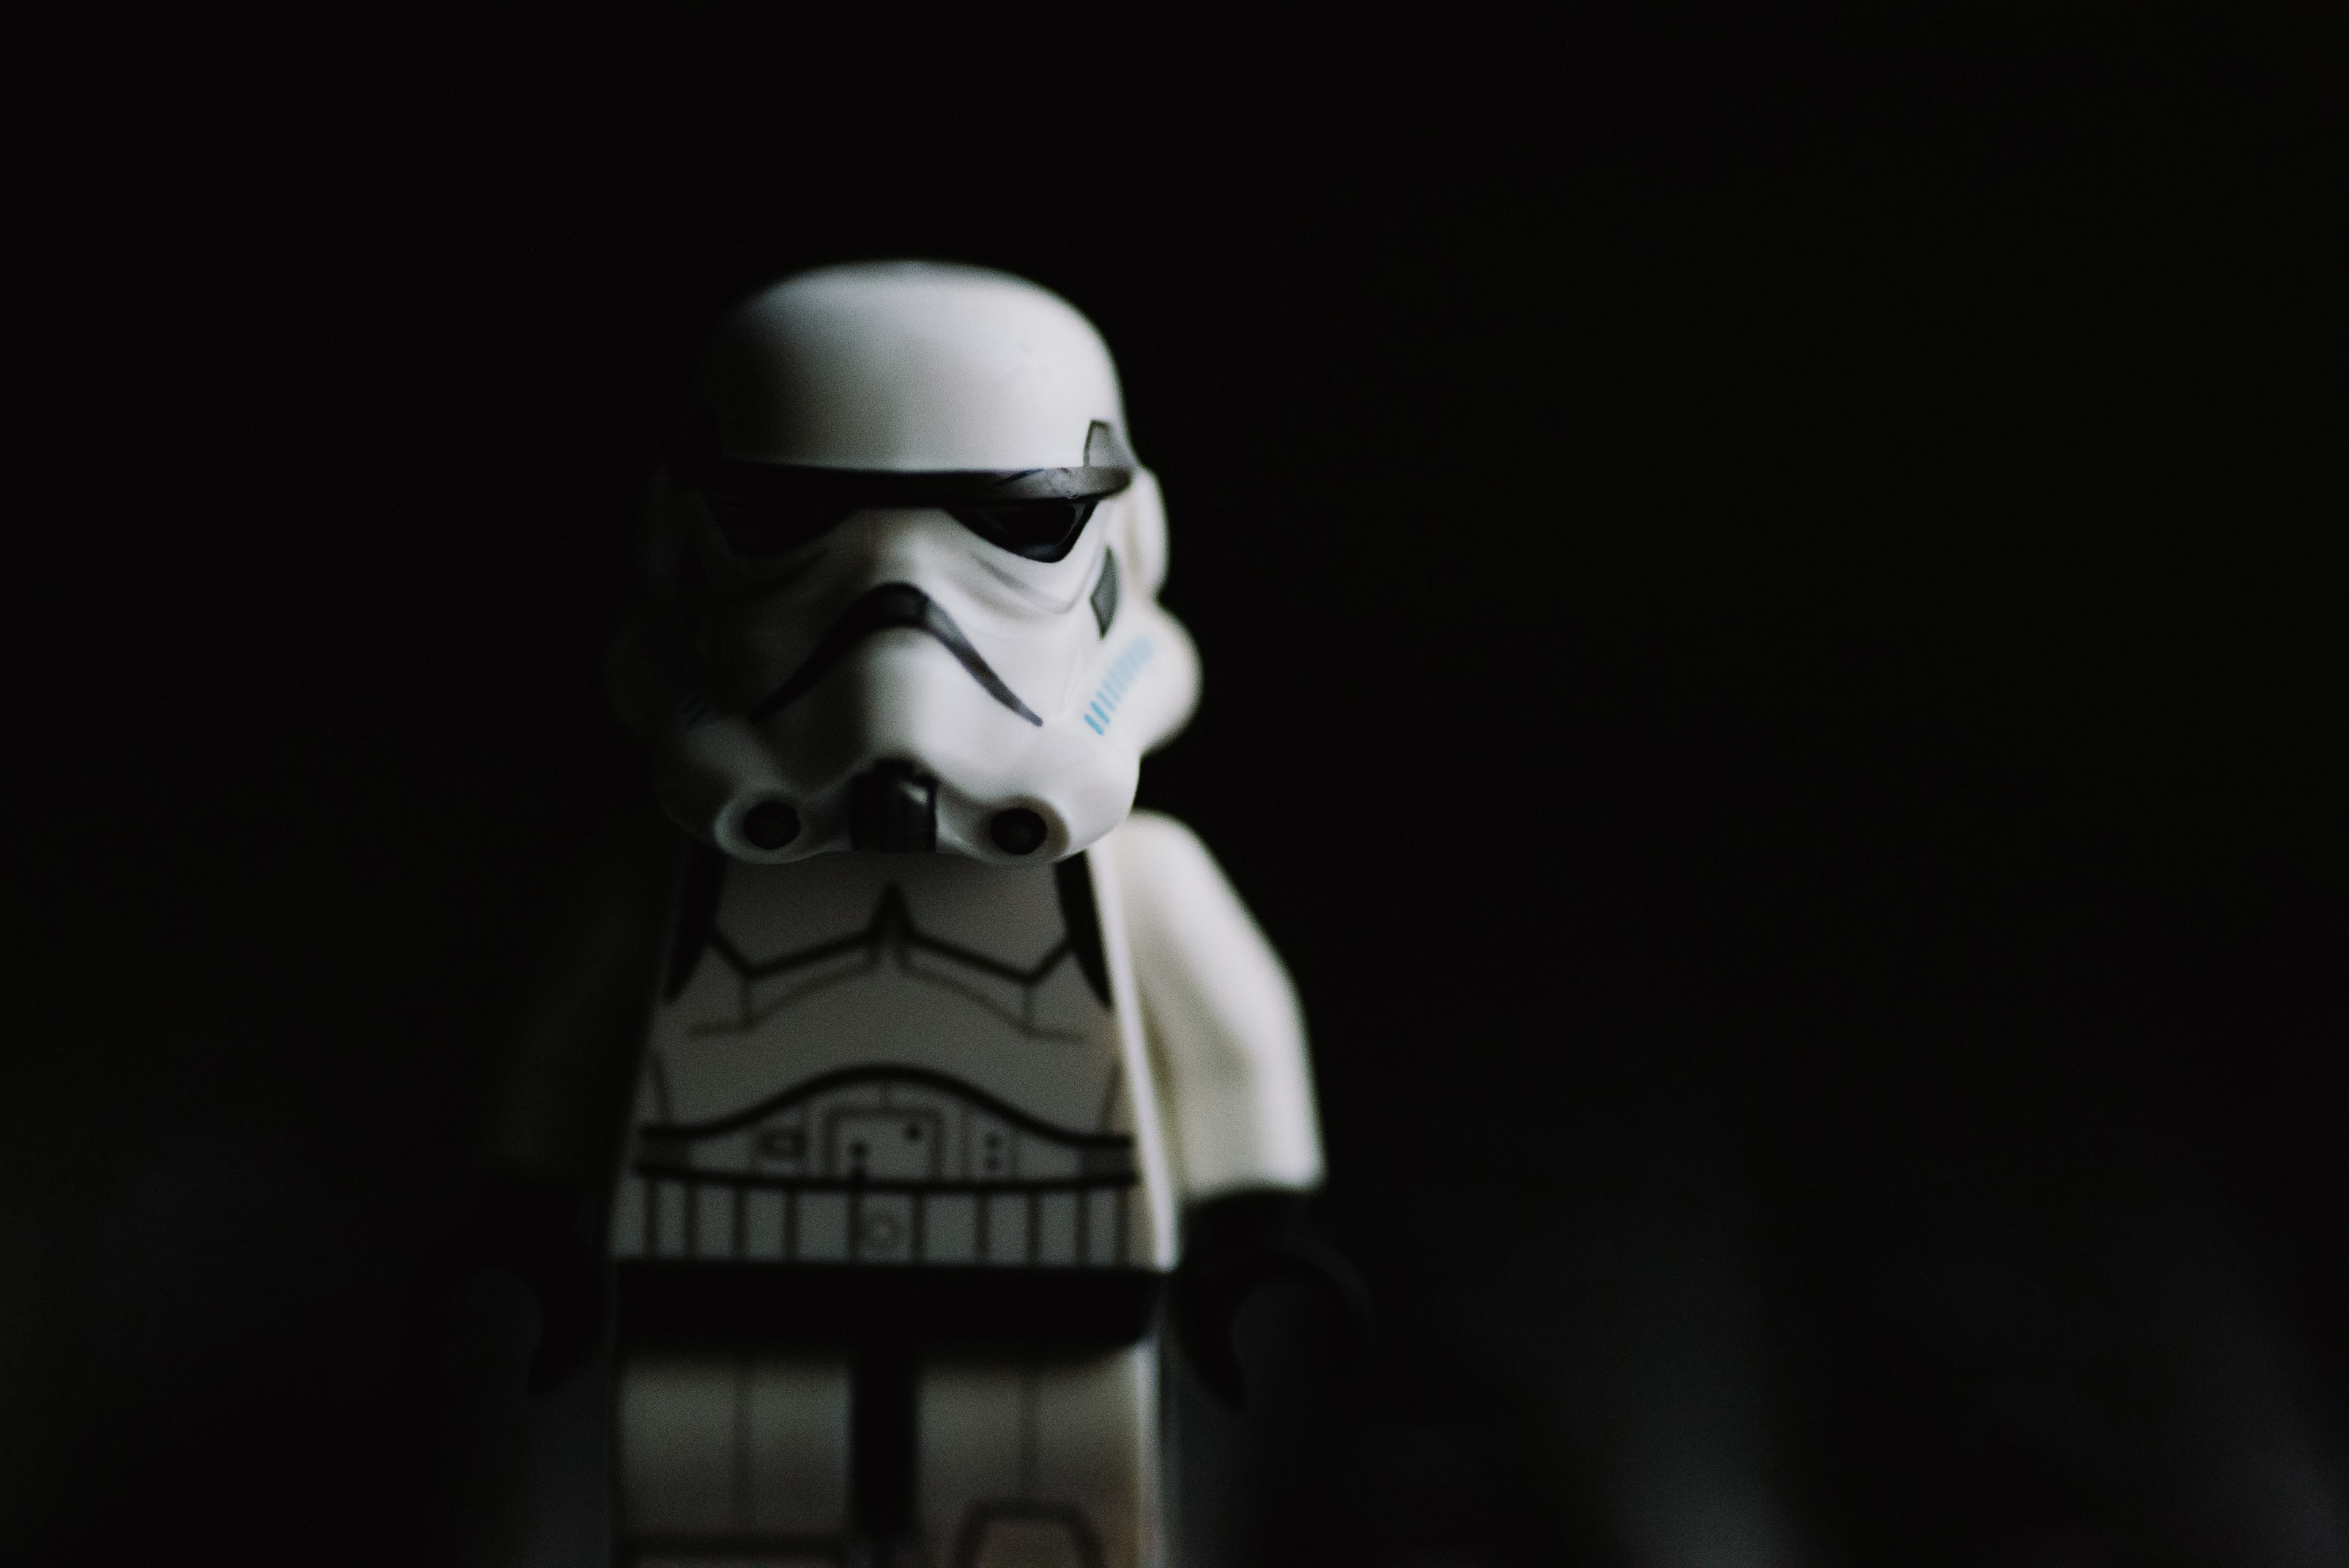 Black And White Macro Star War And Toy Hd 4k Wallpaper And Background